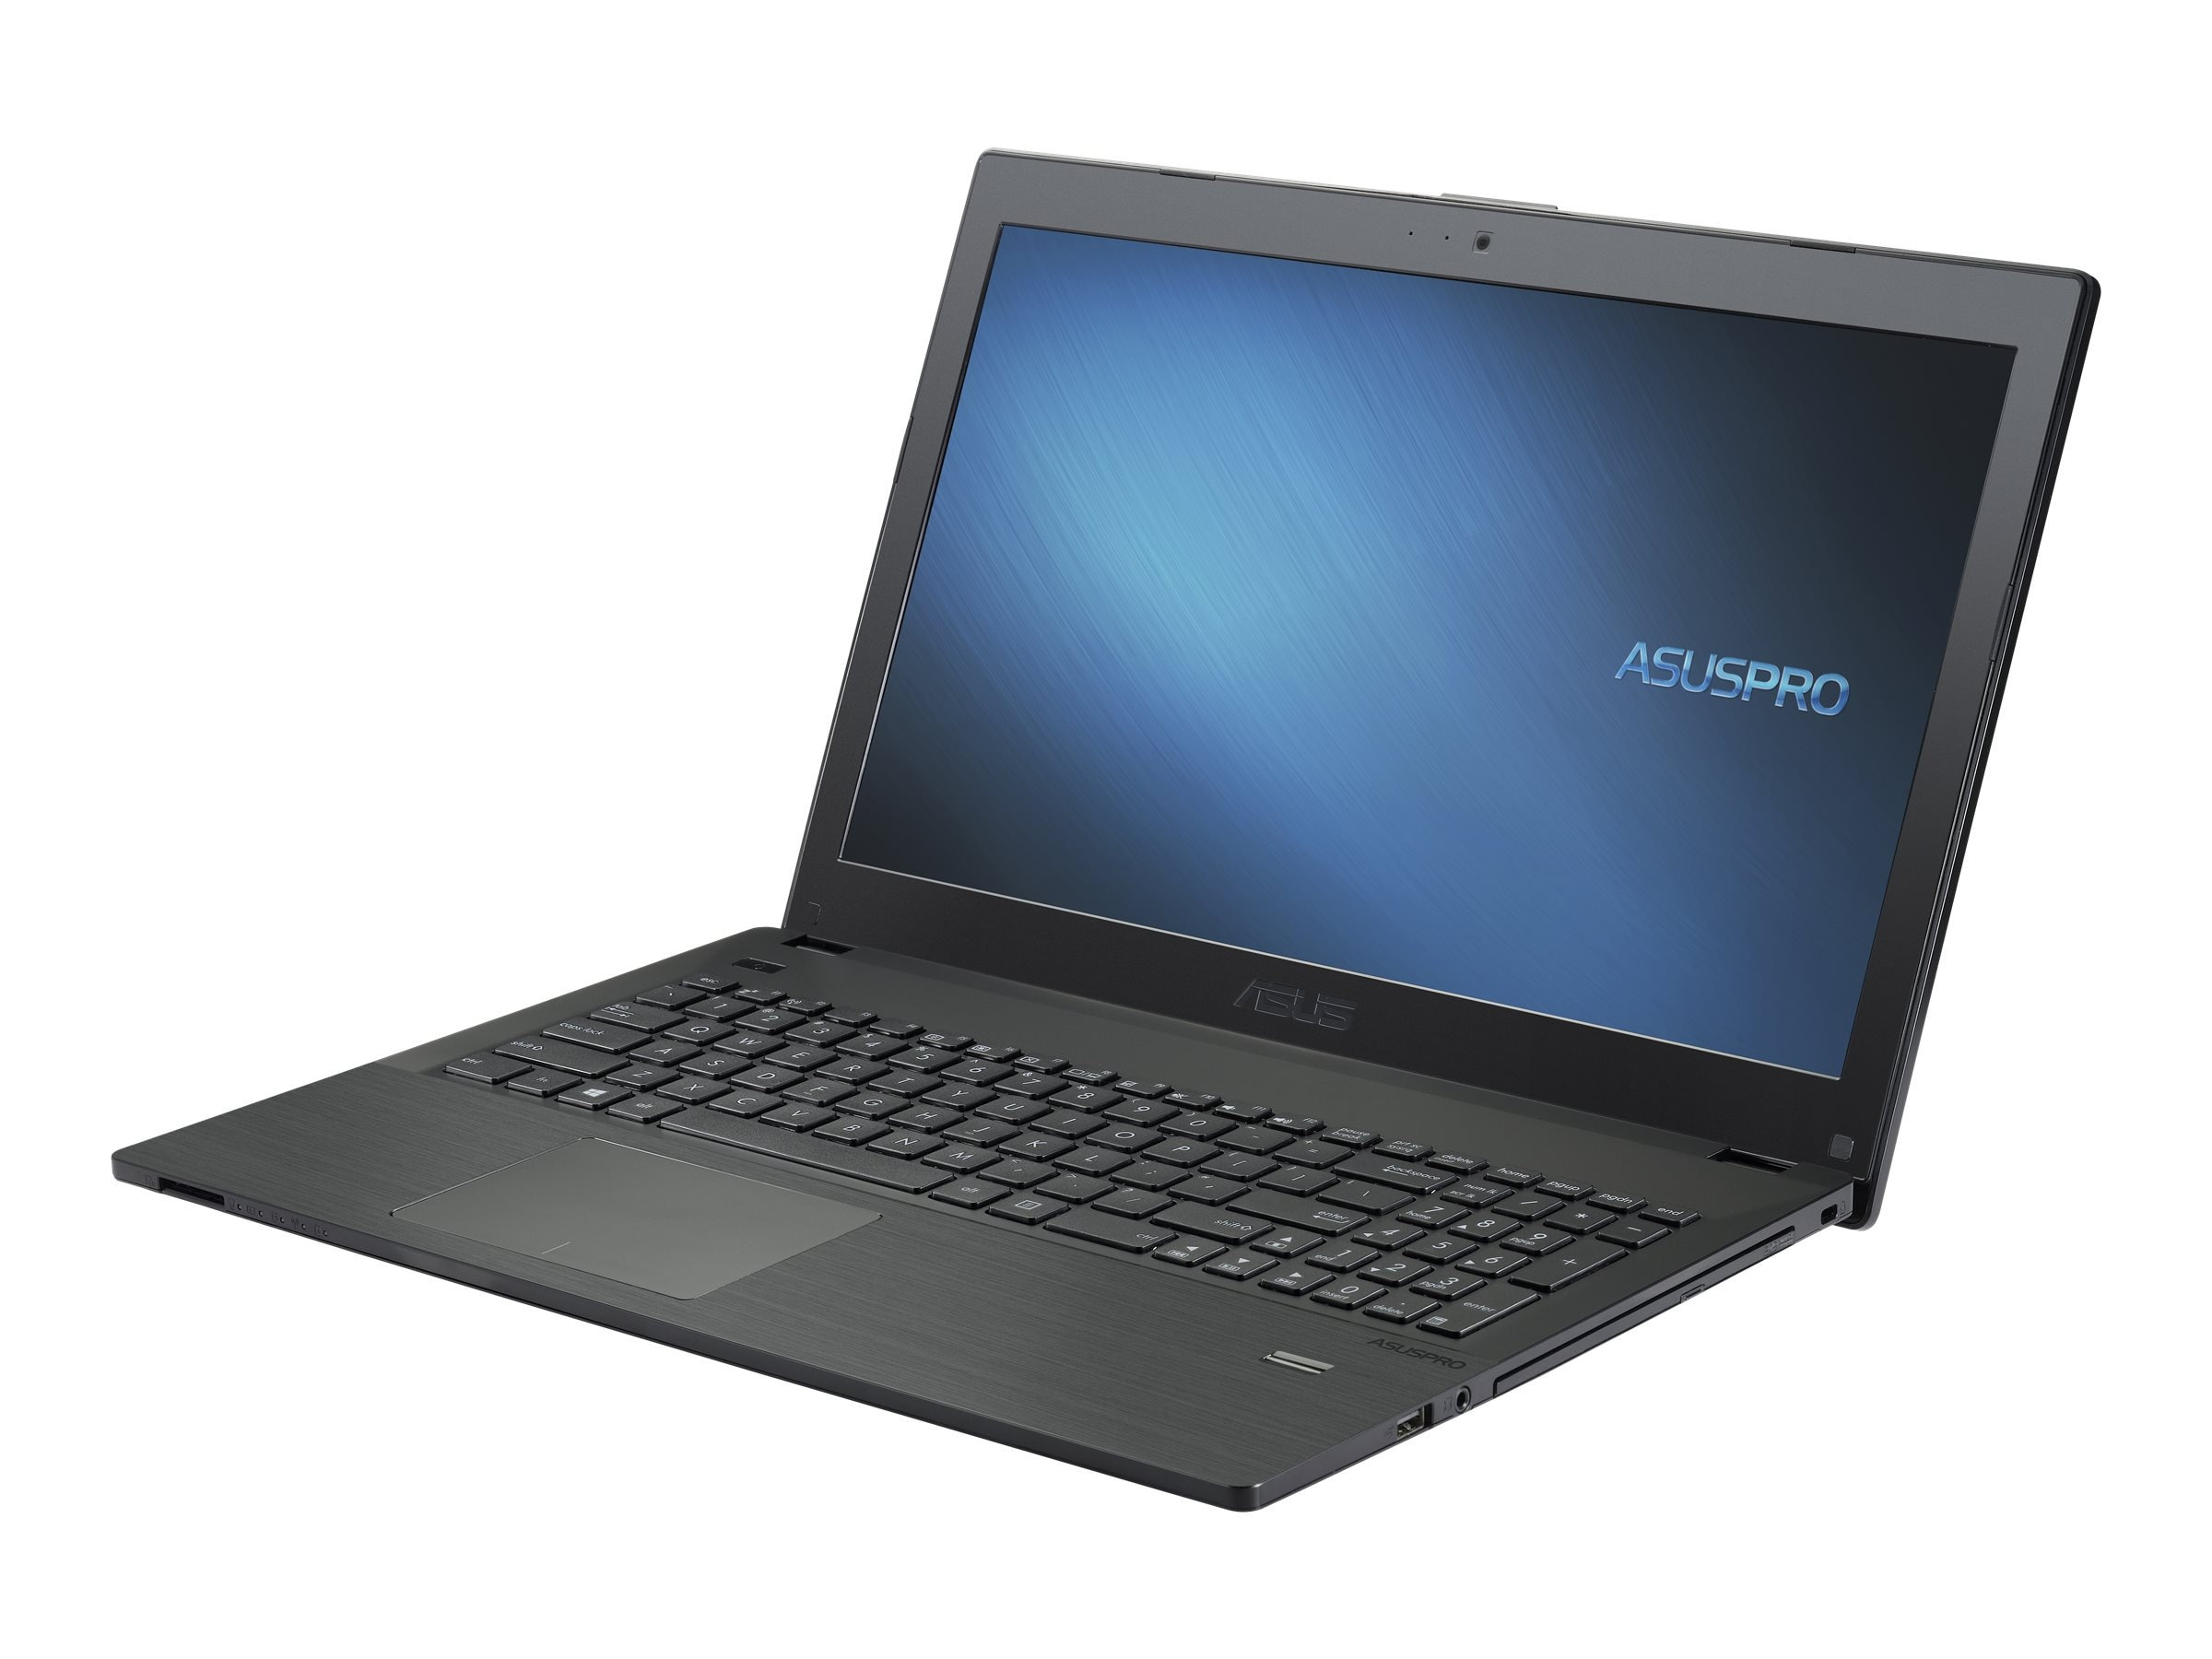 Asus Notebook PC Core i3-5005U 4GB 500GB 15.6 W7P